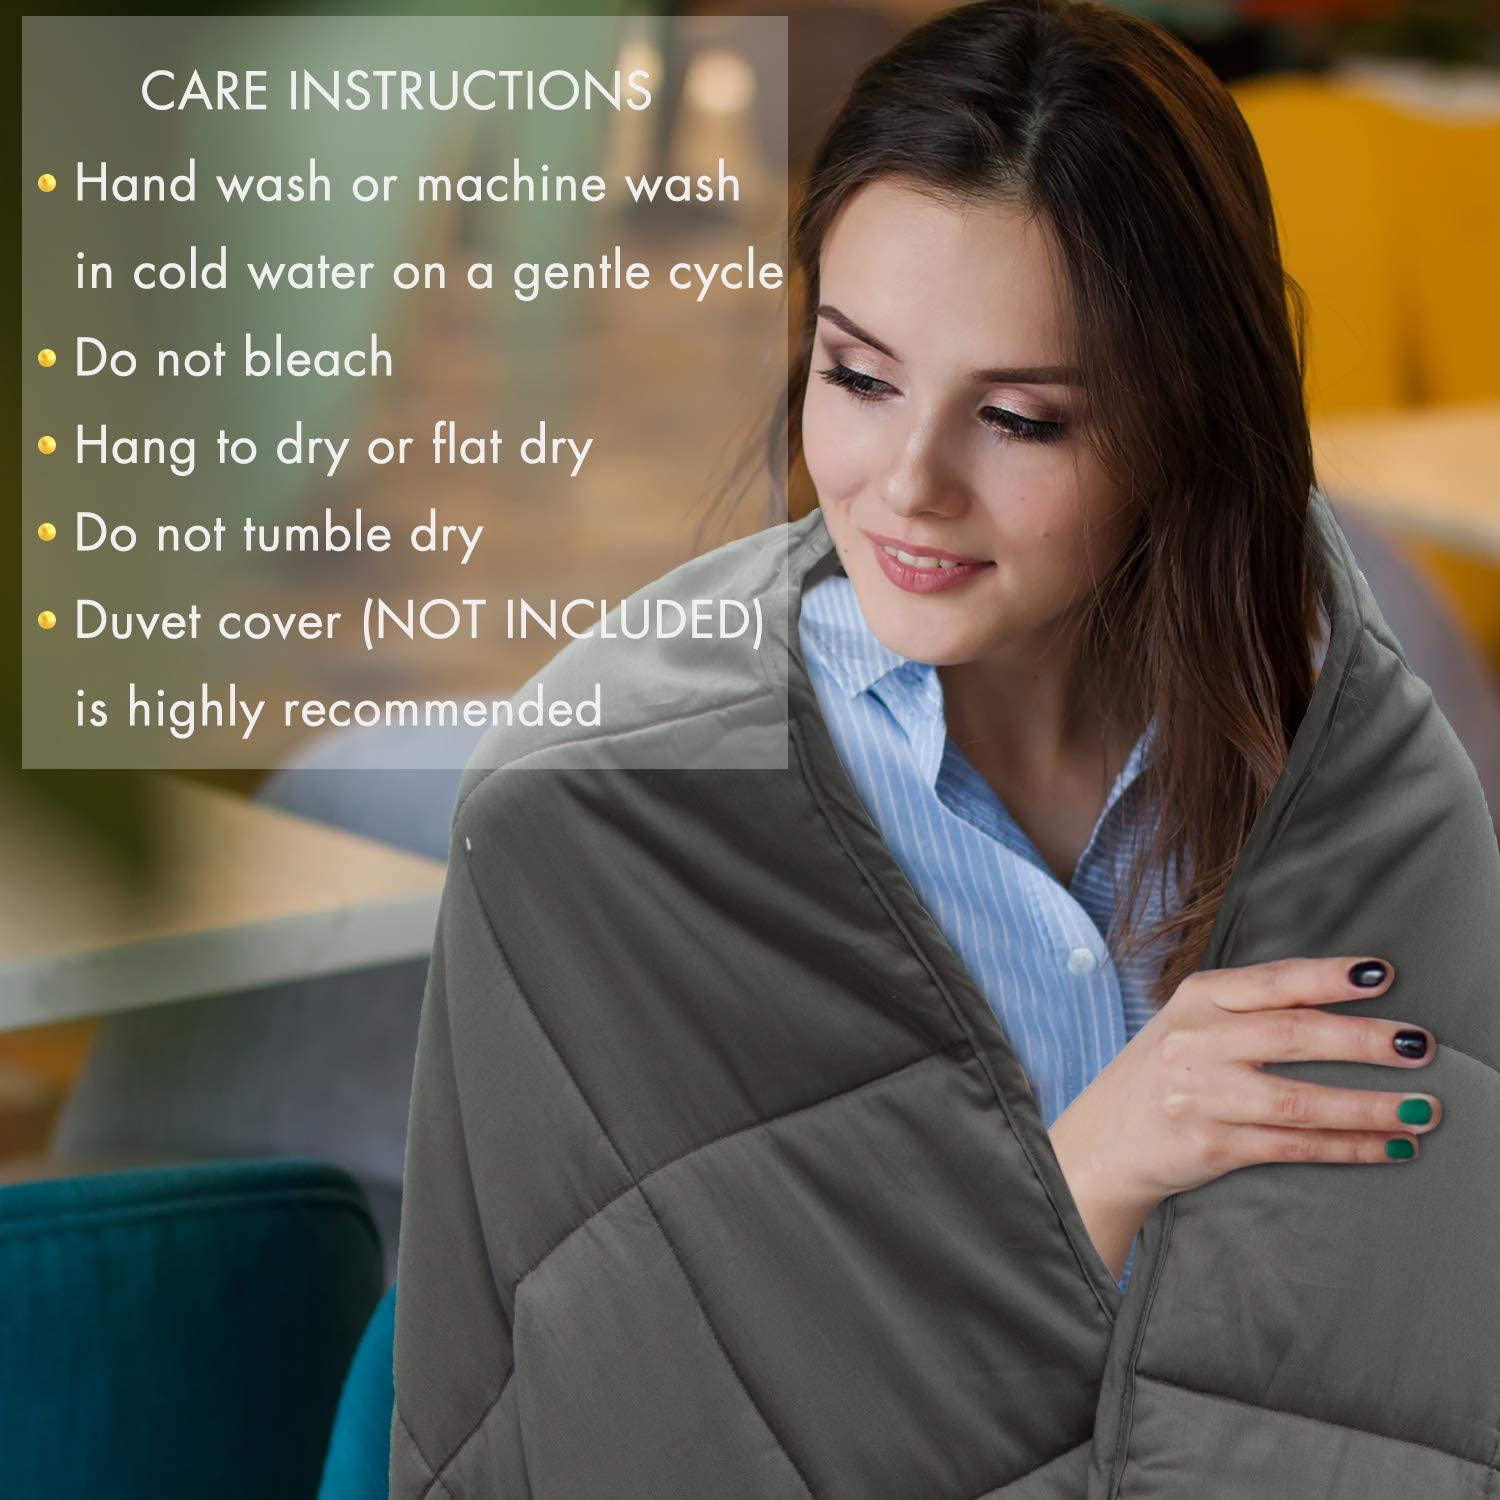 joybest Weighted Blanket 10 lbs for Kids About 90-120 lbs 41x60  Natural Cotton Material Premium Glass Beads Grey